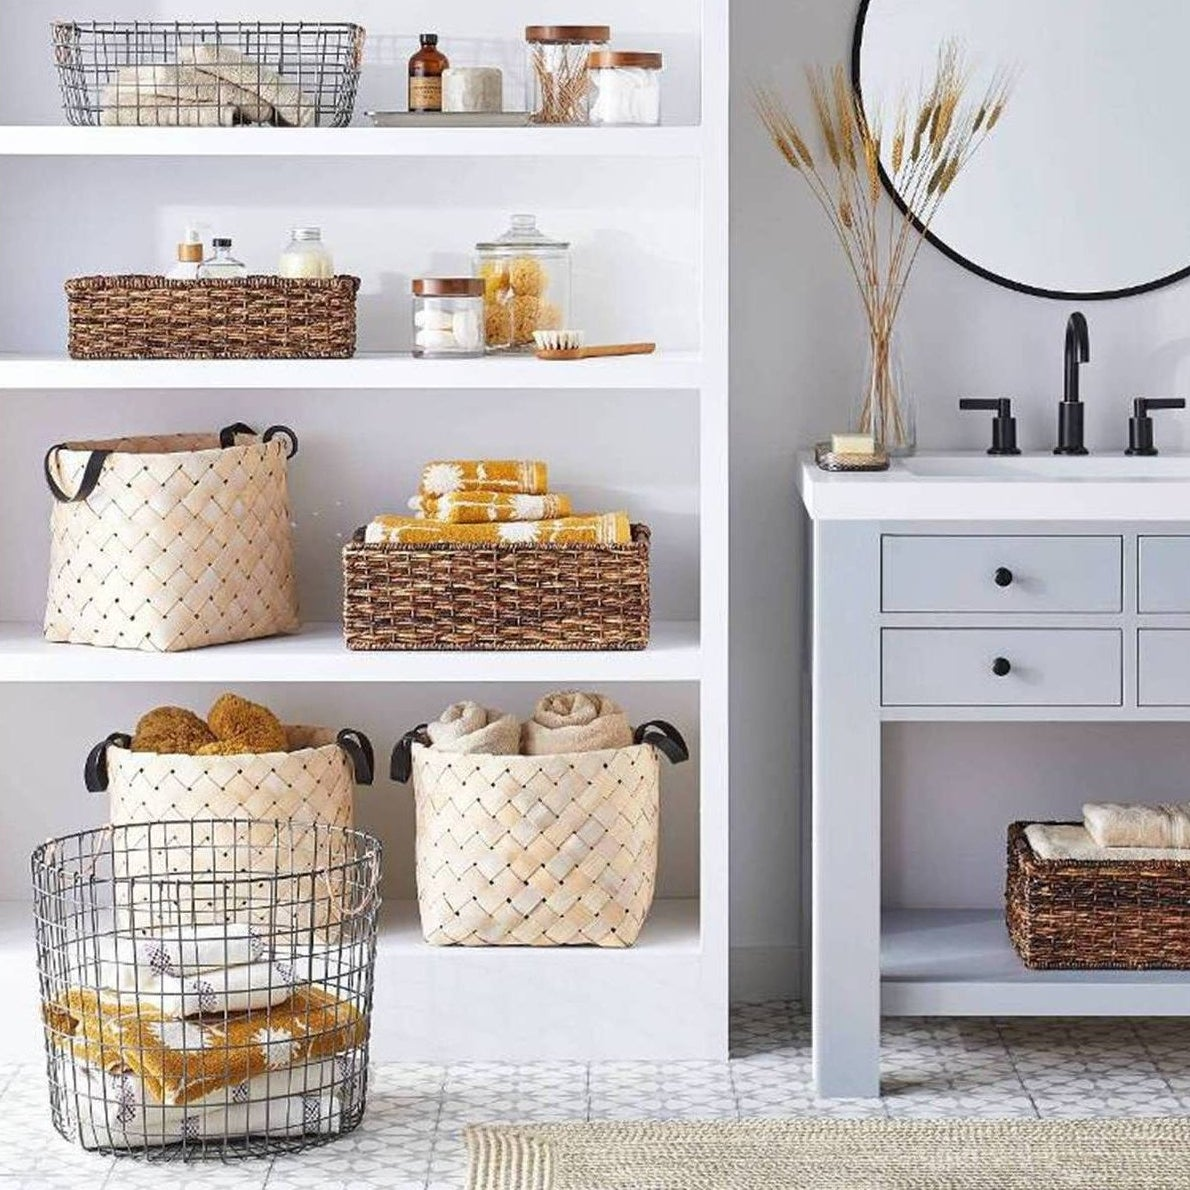 Wire storage basket with white and yellow towels inside